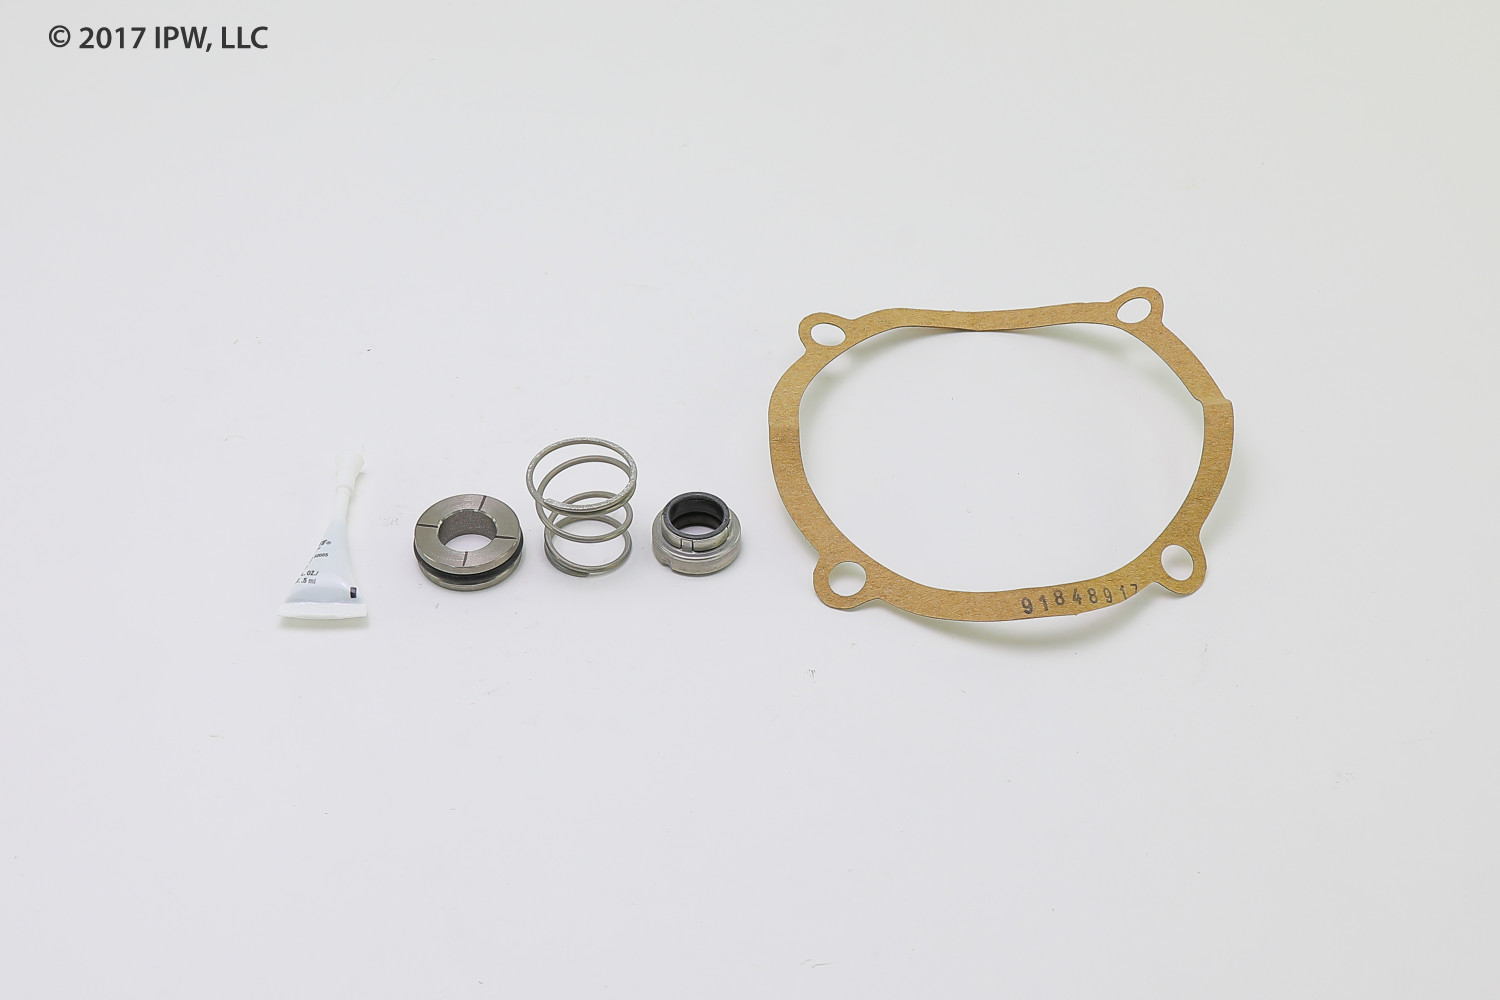 PACO Pump 91909687 K100-7 SEAL KIT